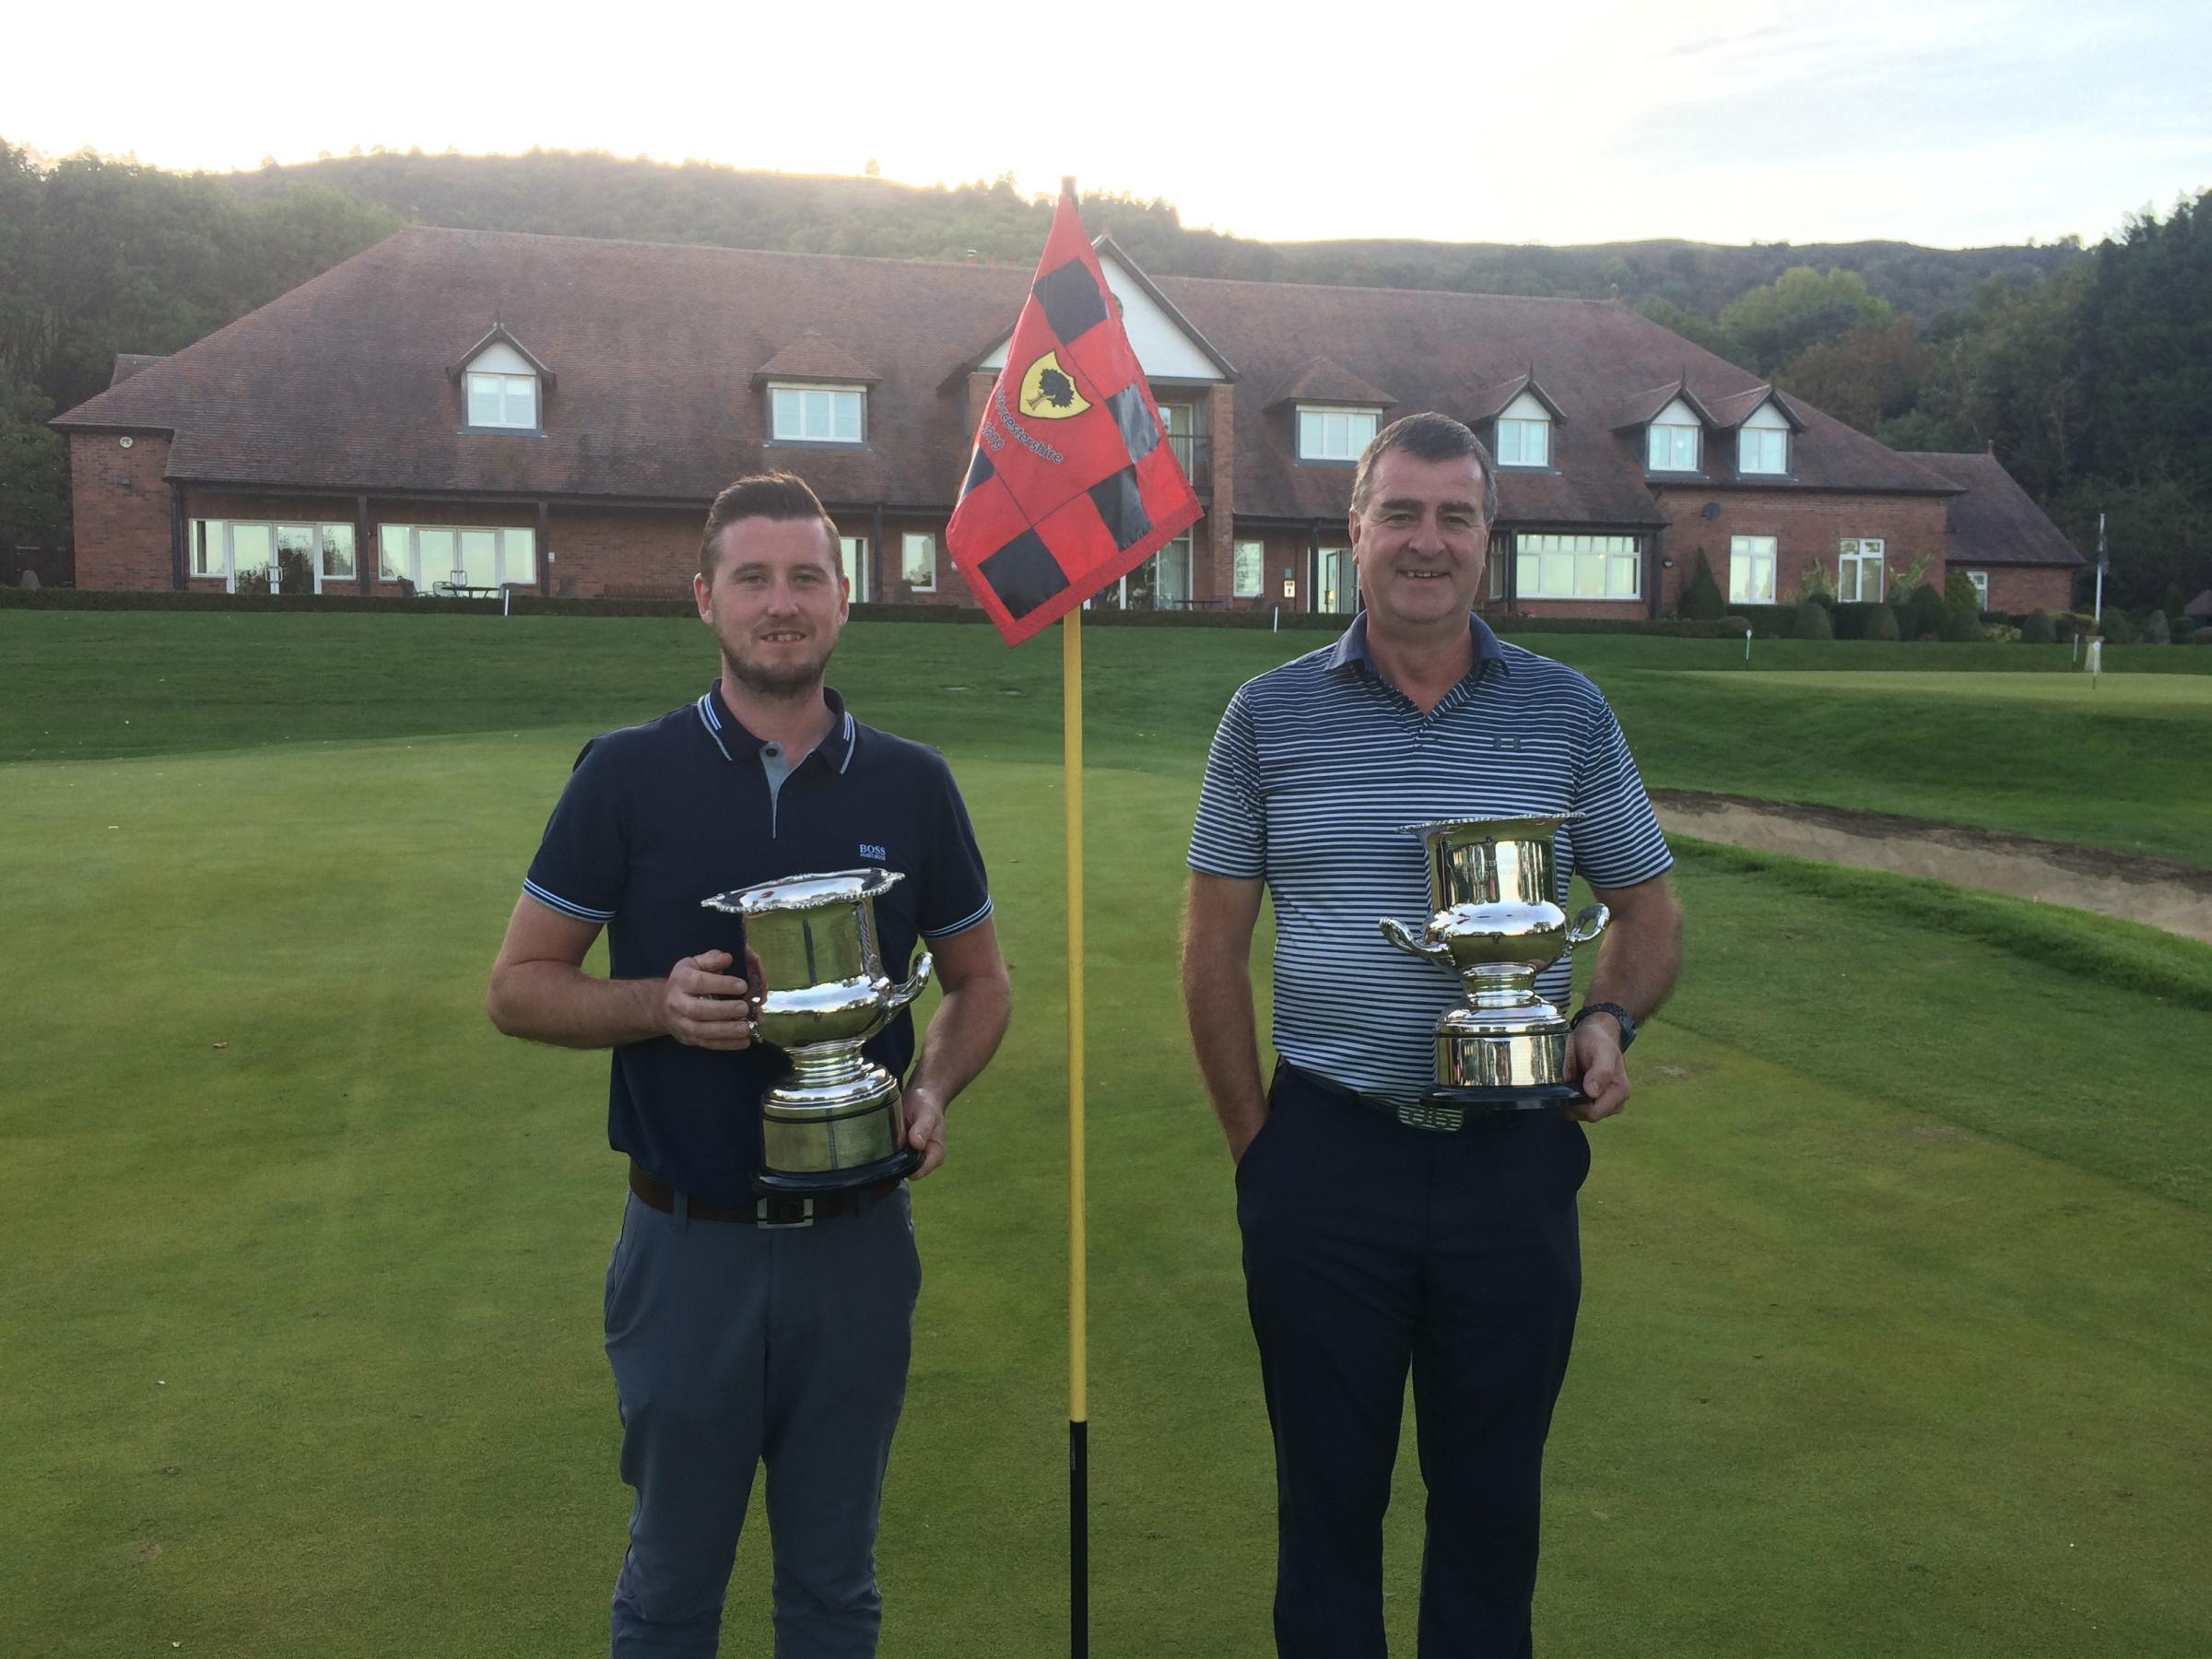 Jason Allies Andy Dunster won the DeVere Open at The Worcestershire Golf Club